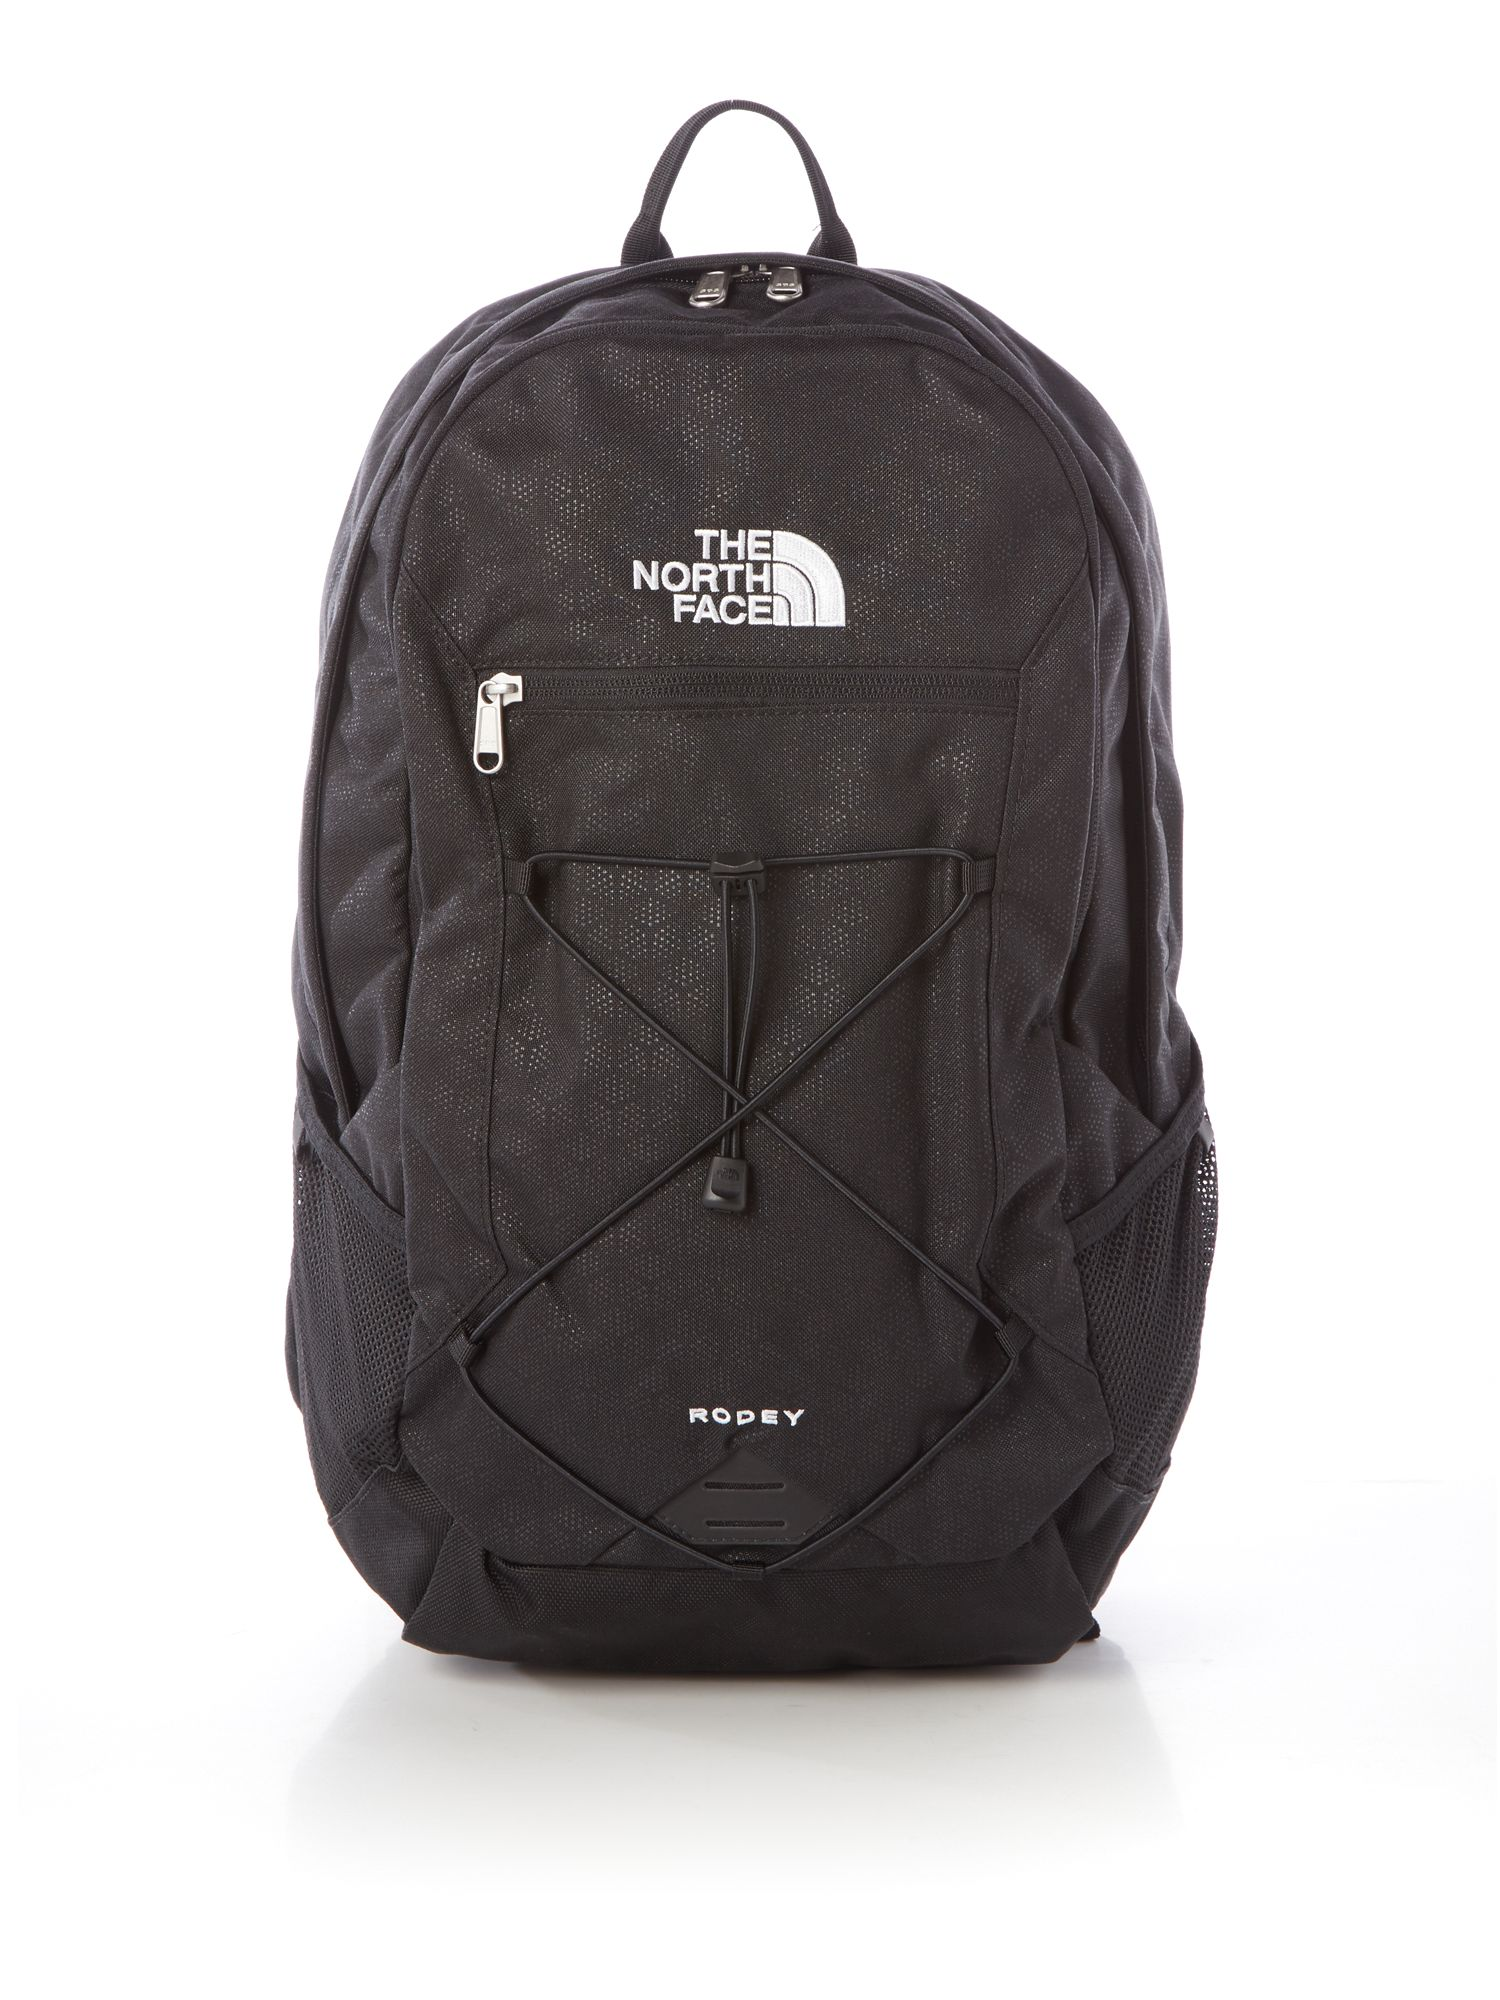 The North Face Rodey Backpack, Black